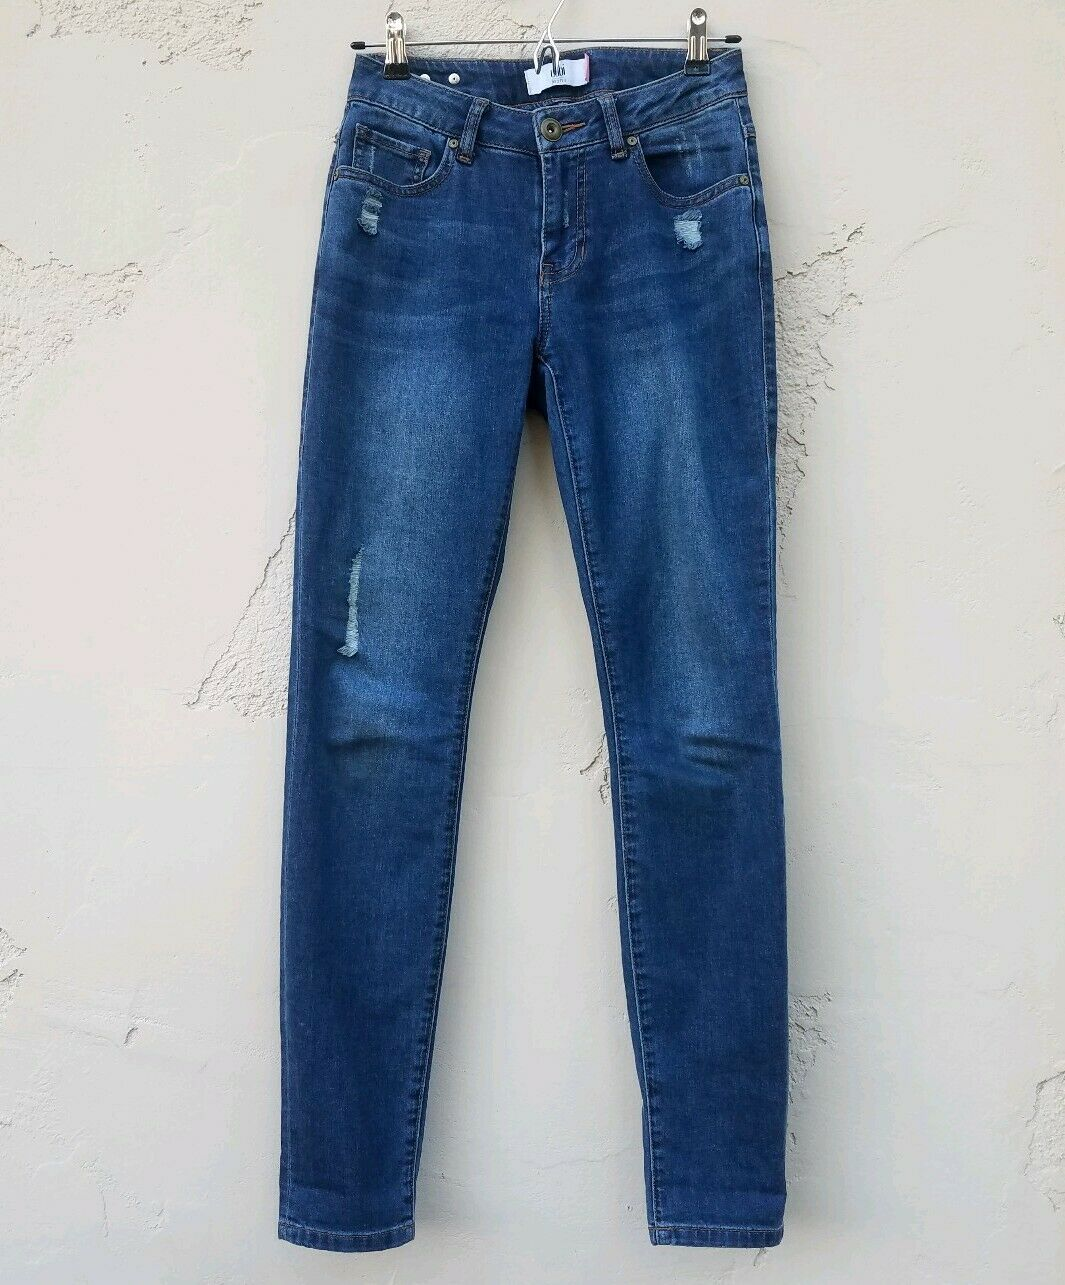 Cabi Womens Distressed Destructed Curvy Skinny bluee Denim Jeans Pants Size 2